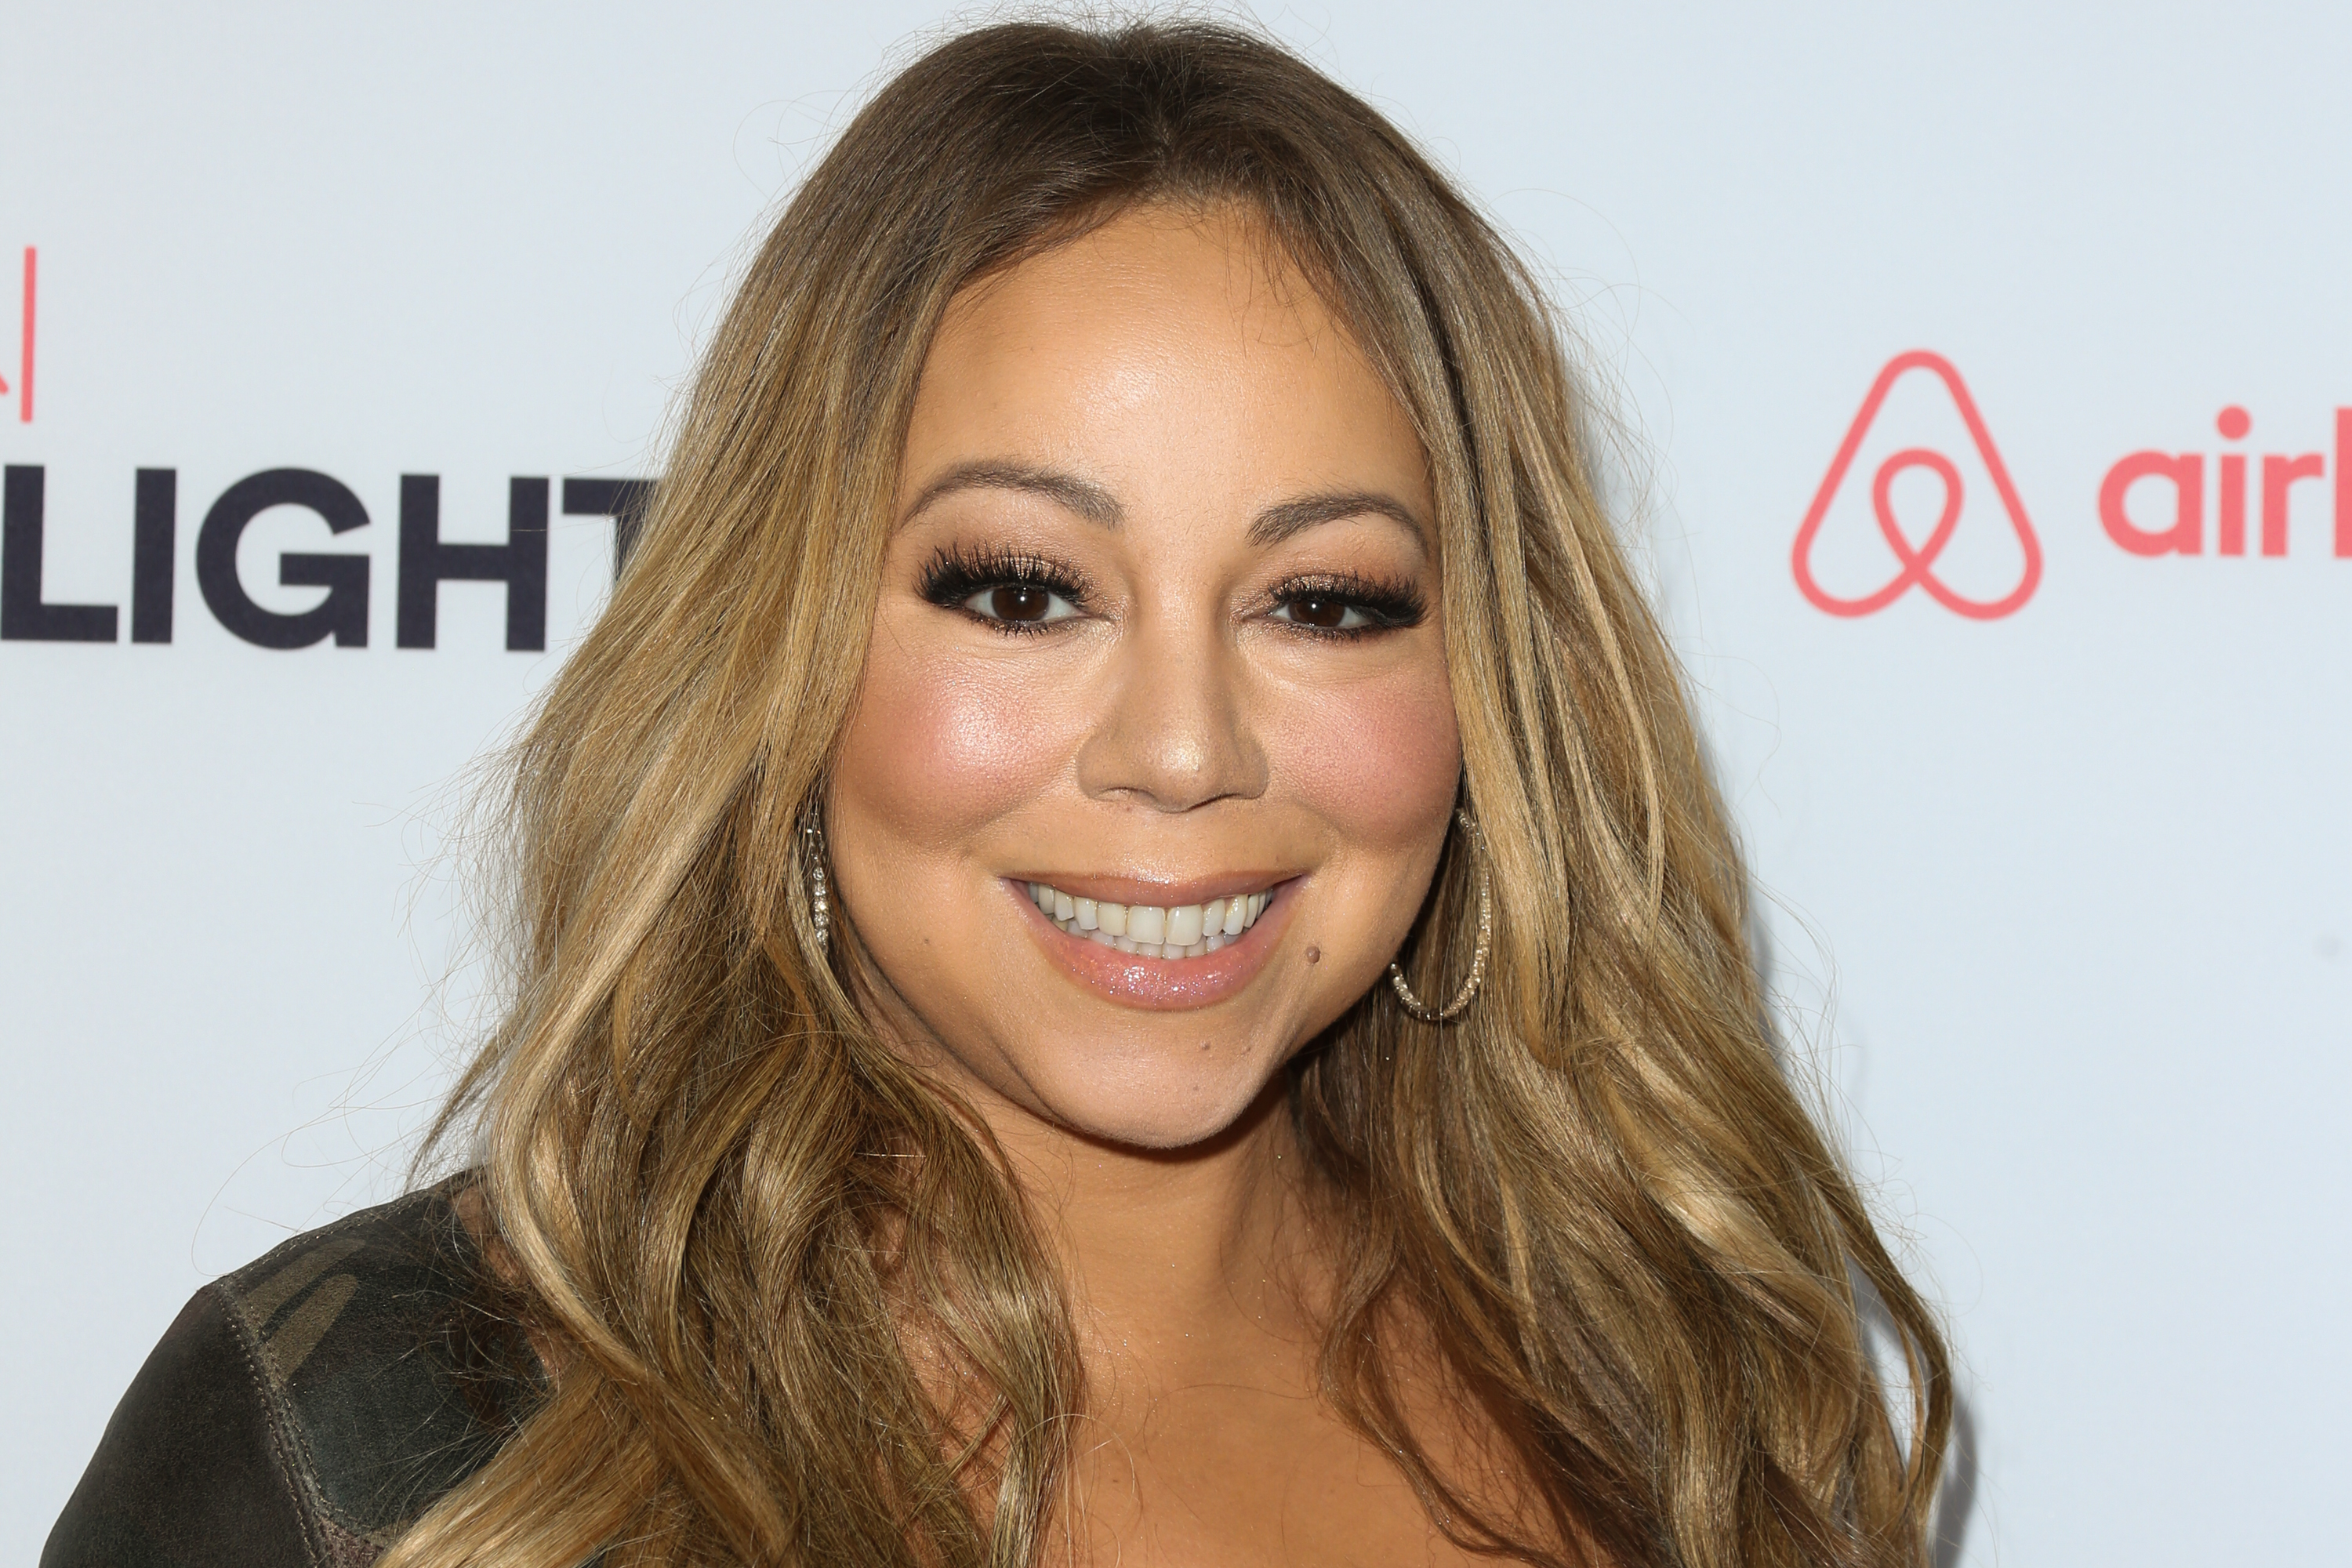 Mariah Carey makes a sparkly jumpsuit and stilettos look comfortable, as only Mariah can